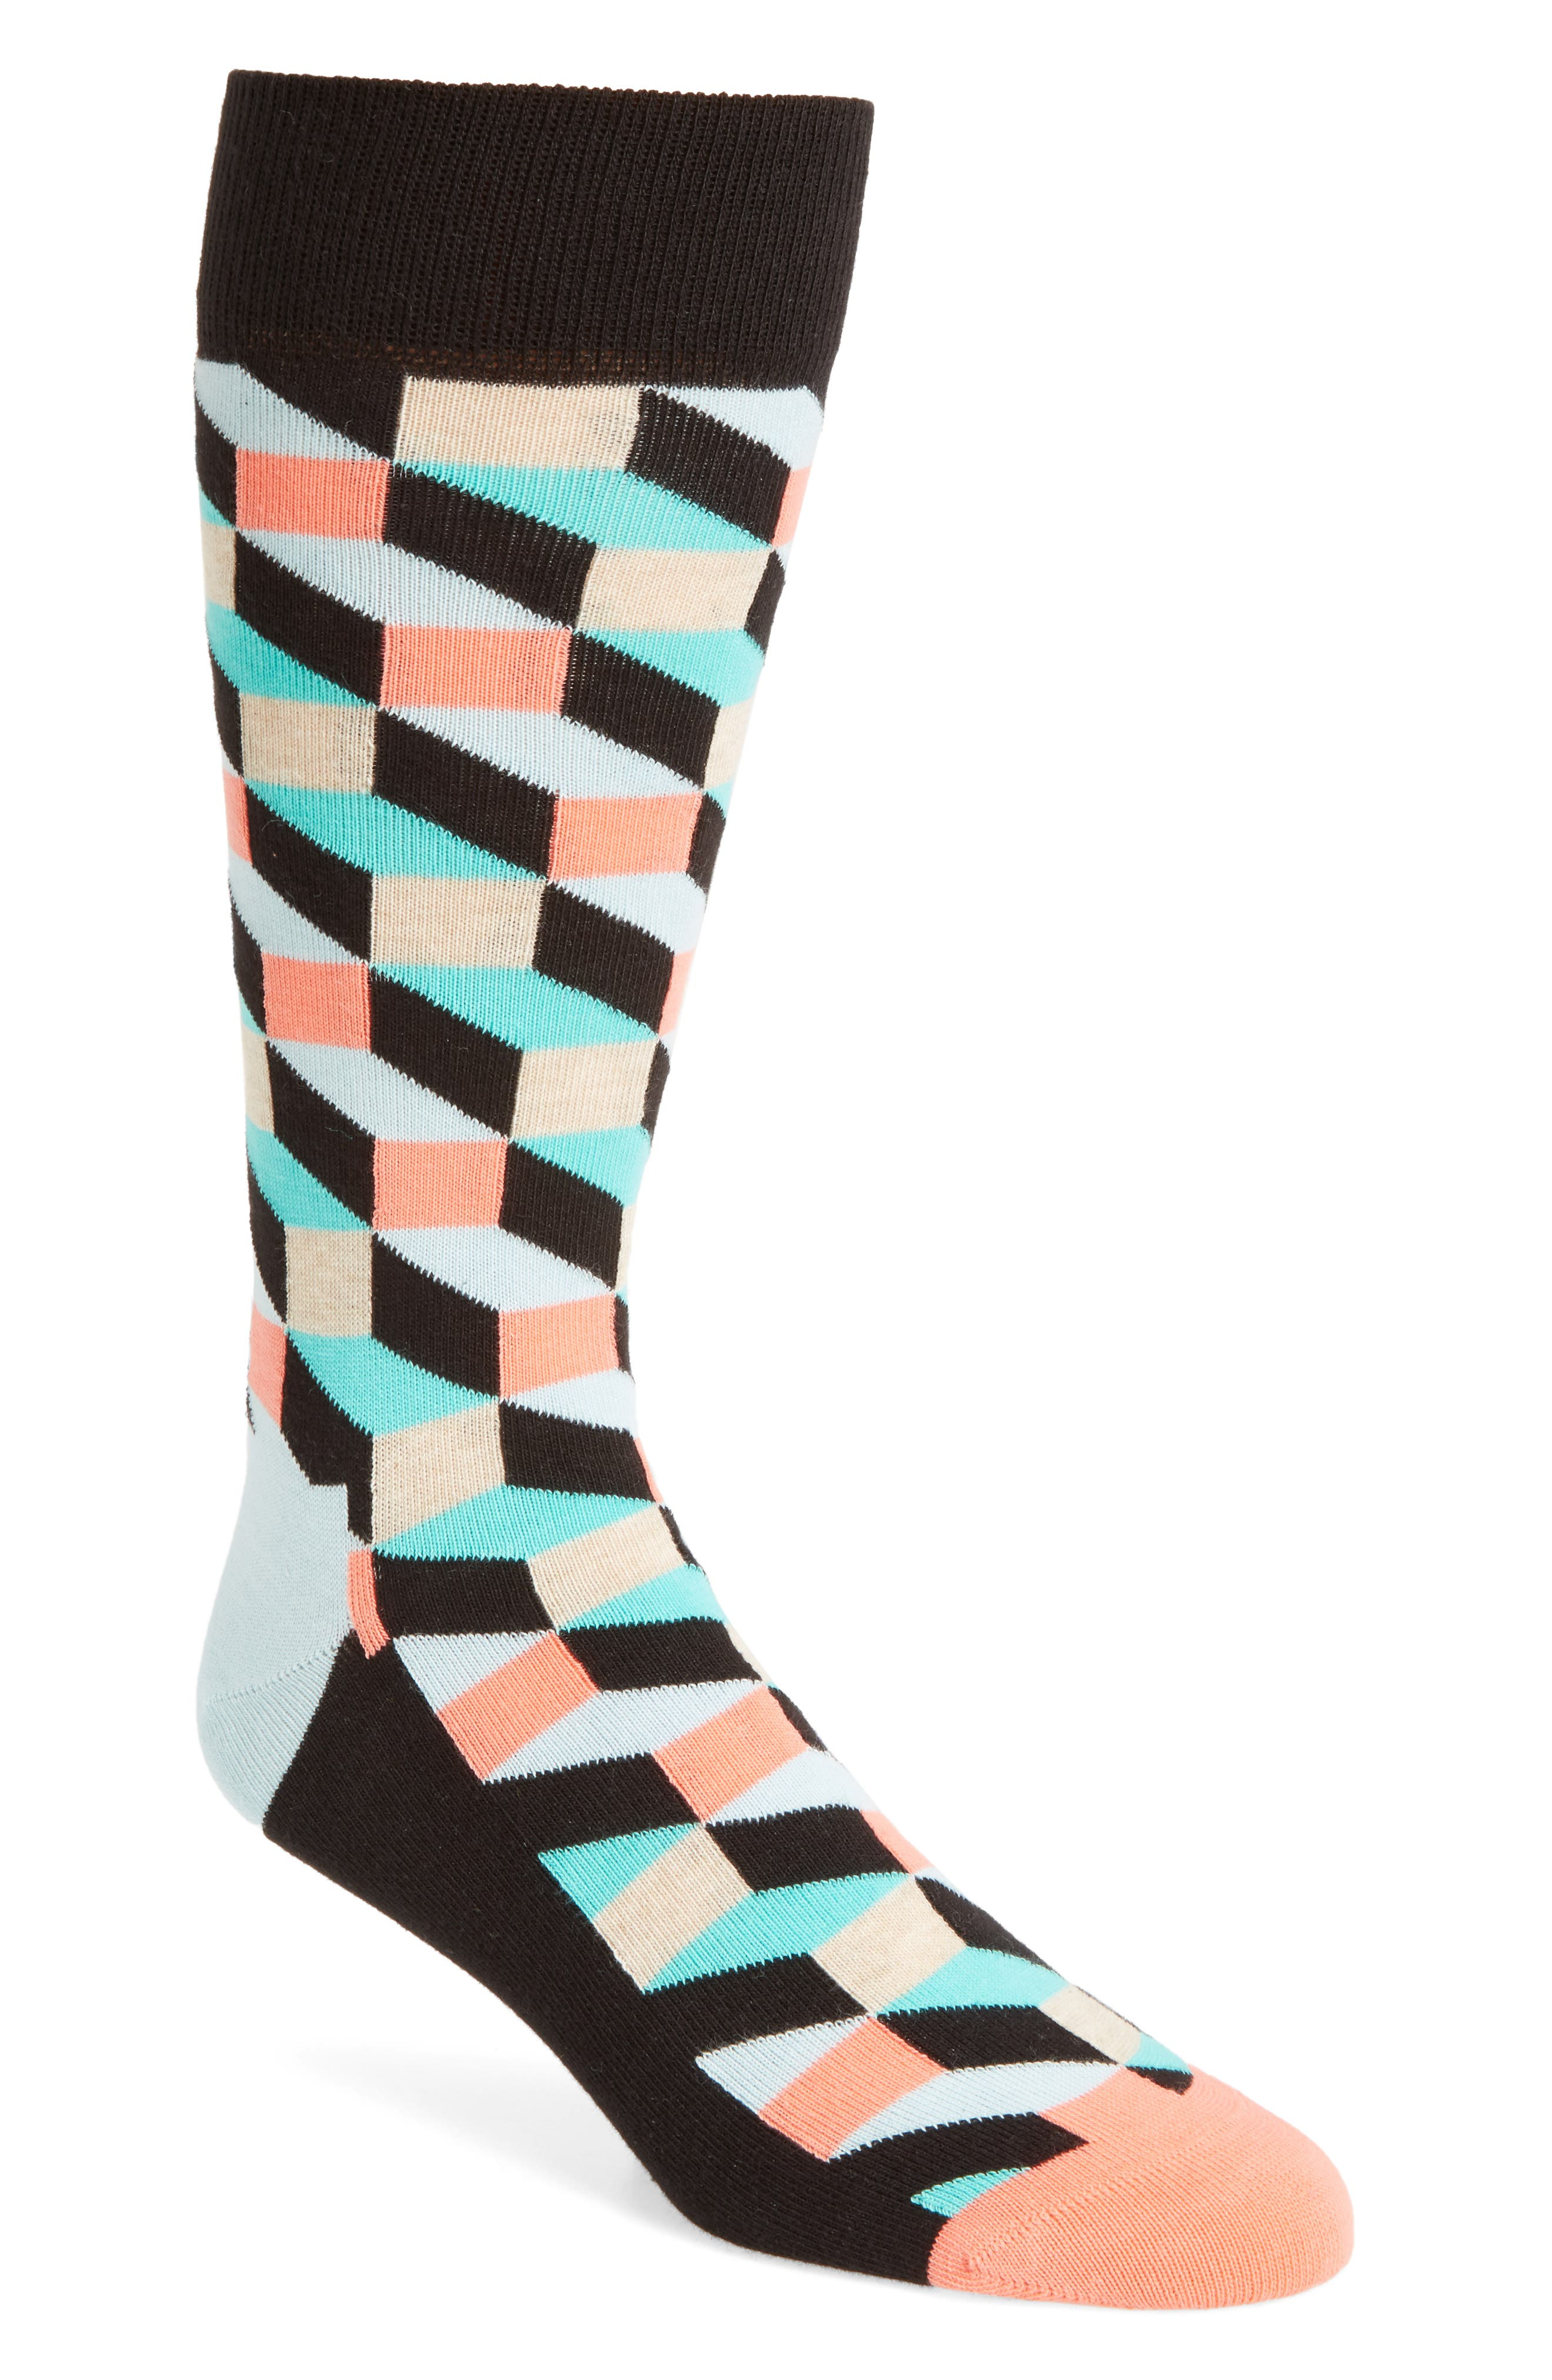 Happy Socks Geometric Cotton Blend Socks